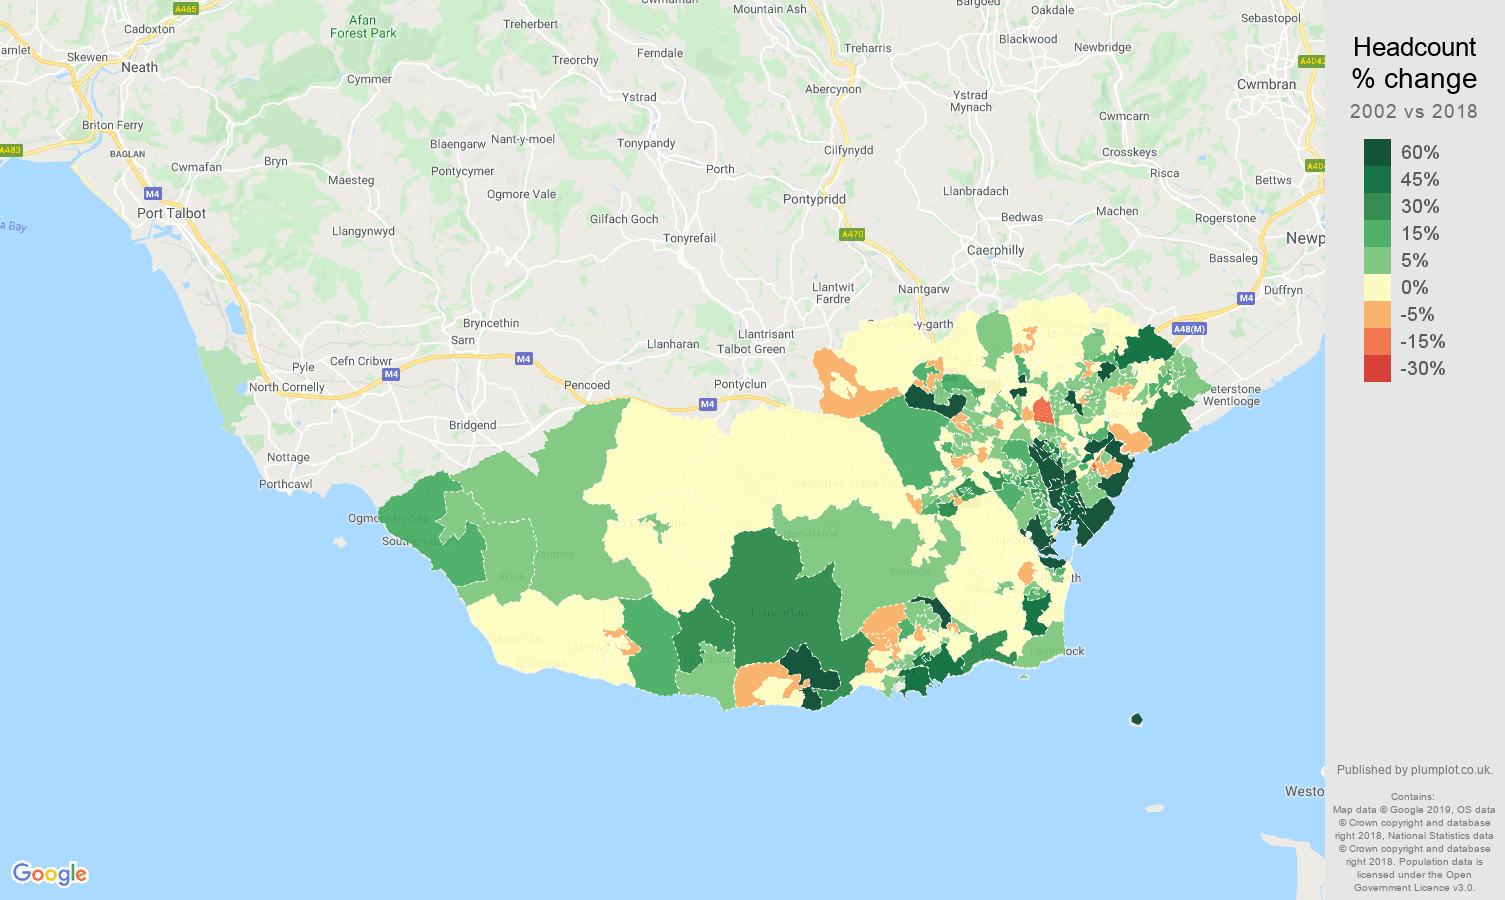 South Glamorgan headcount change map